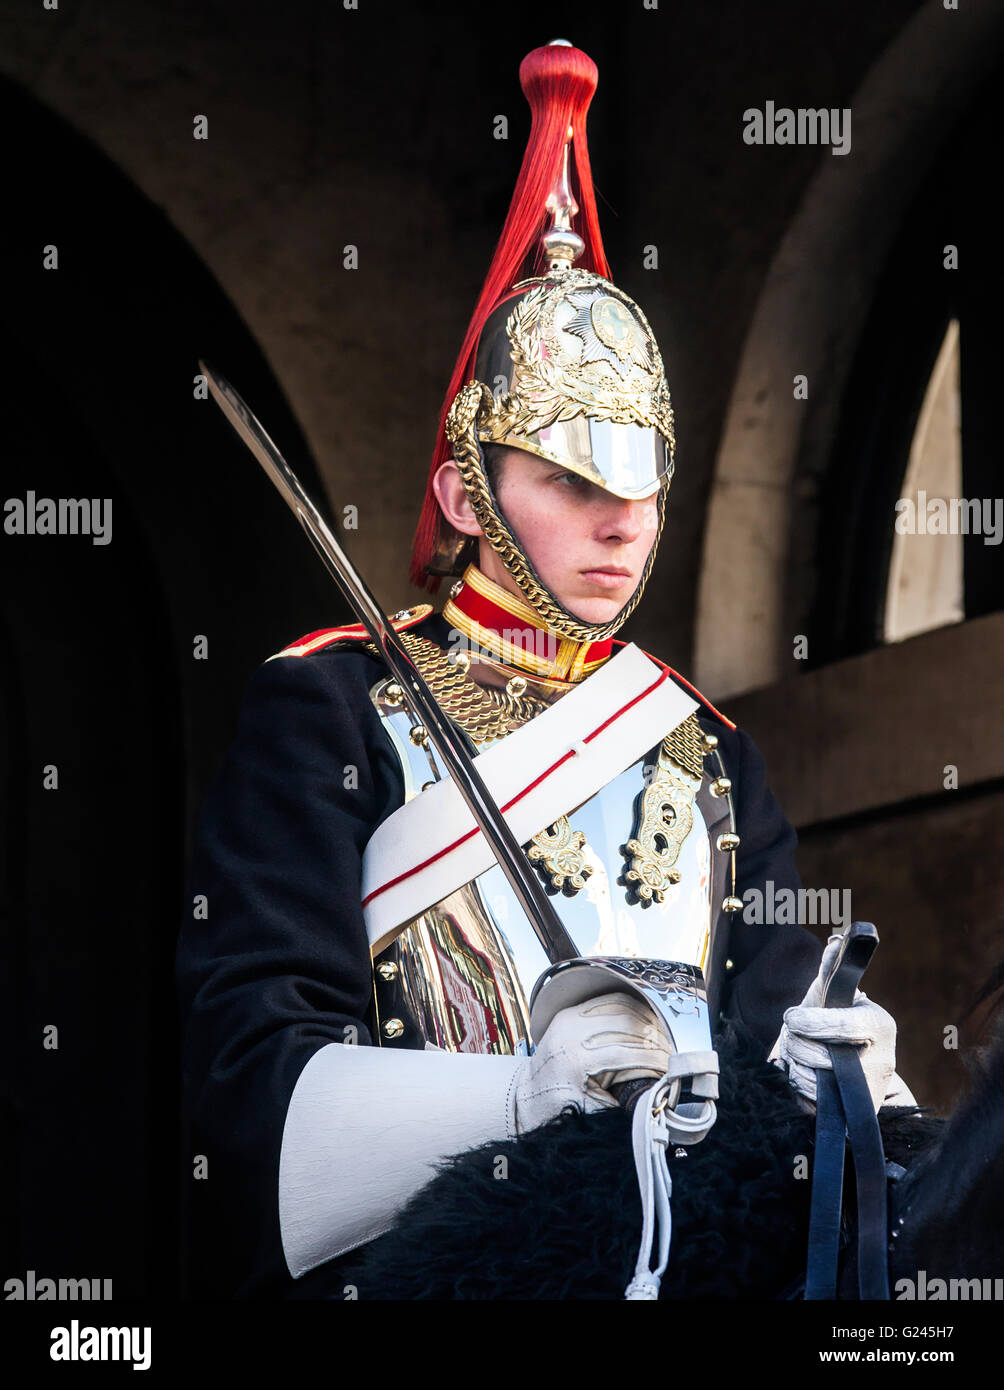 Mounted Blues and Royals Household Cavalry Trooper, Horseguards Parade, London, England. - Stock Image